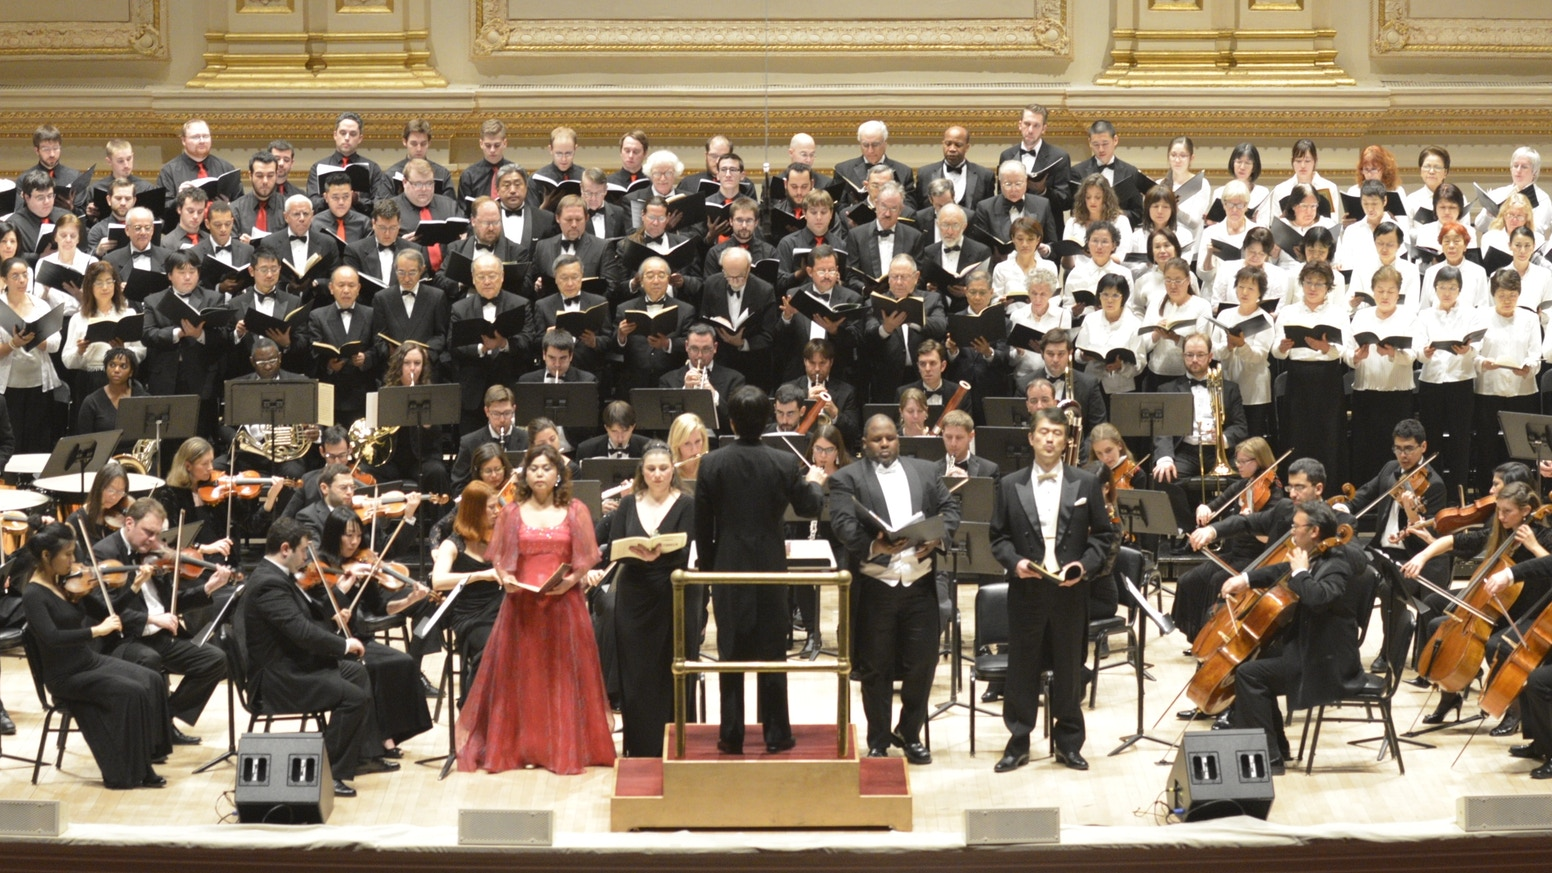 Following a successful Carnegie Hall Debut (December, 2013) with Beethoven's 9th Symphony, NYFO is returning for our enthusiastic fans.